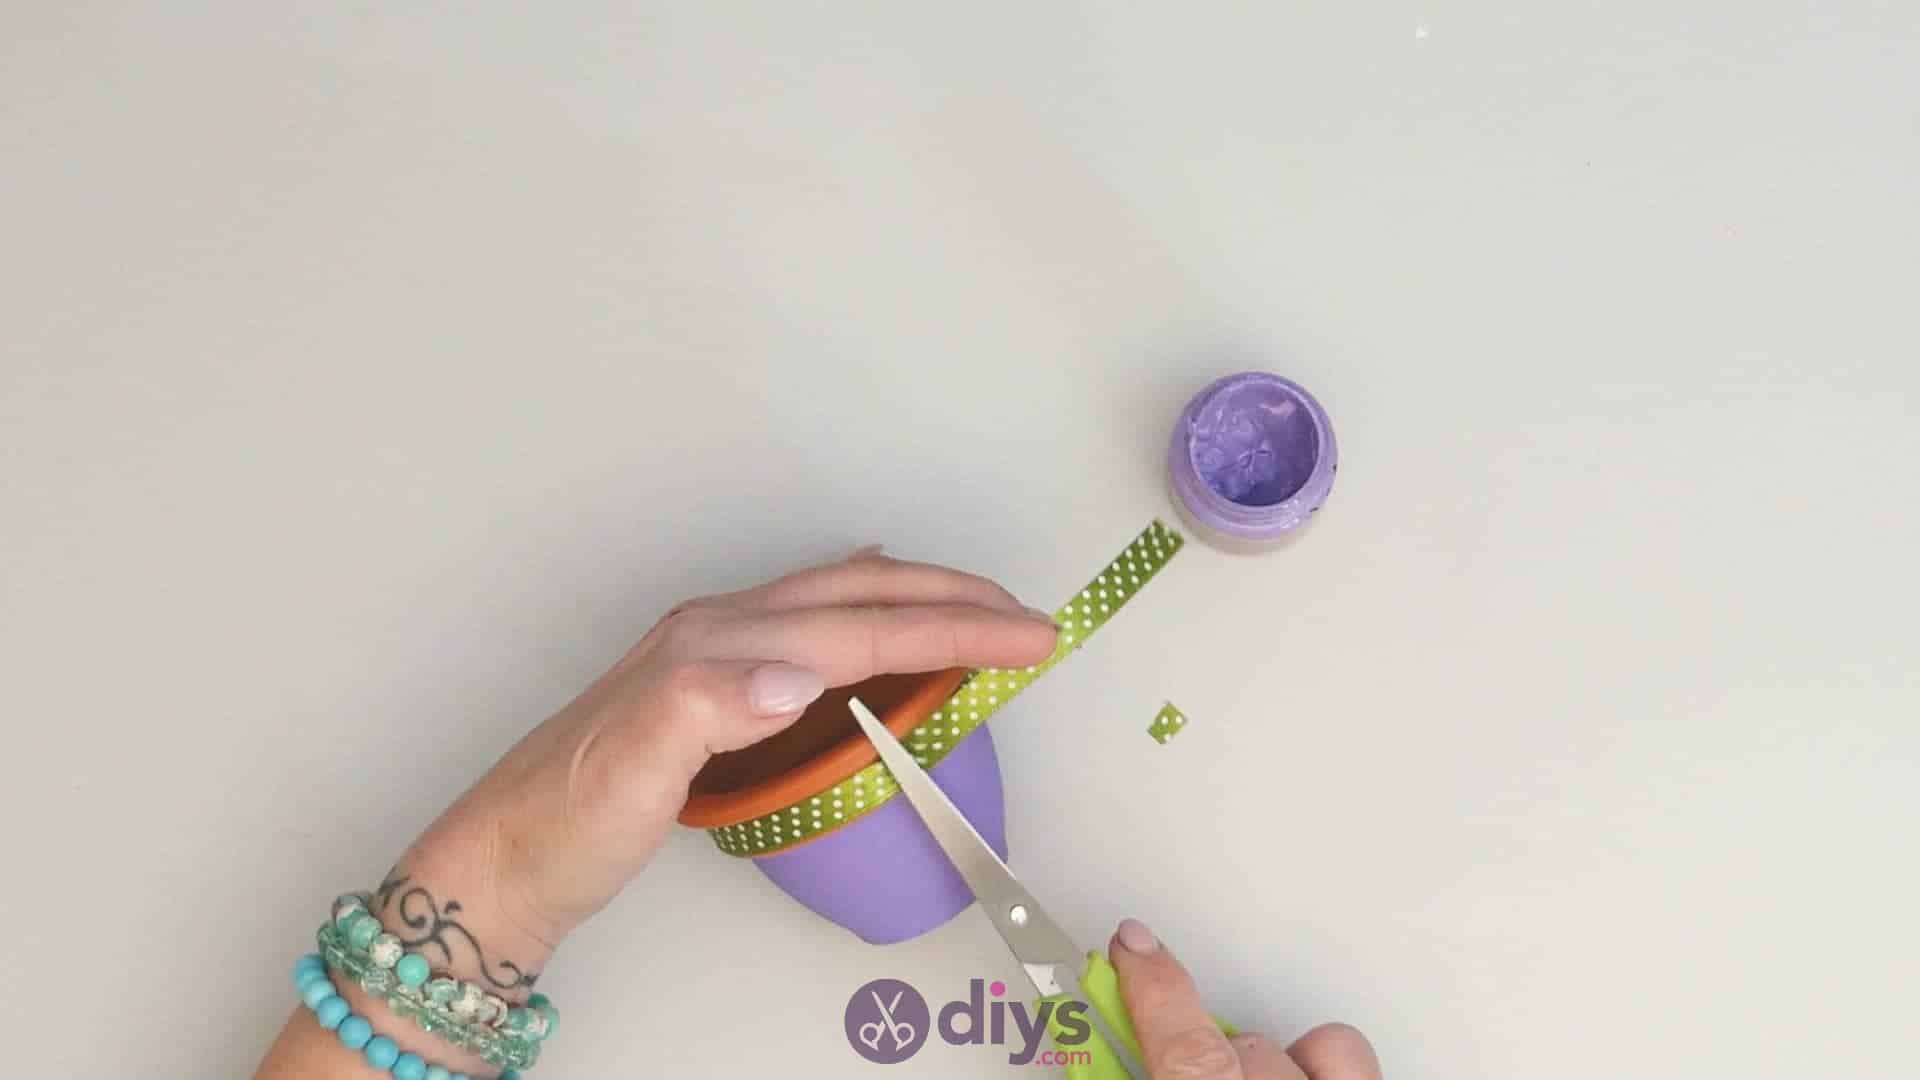 Diy colourful flower pot step 3d